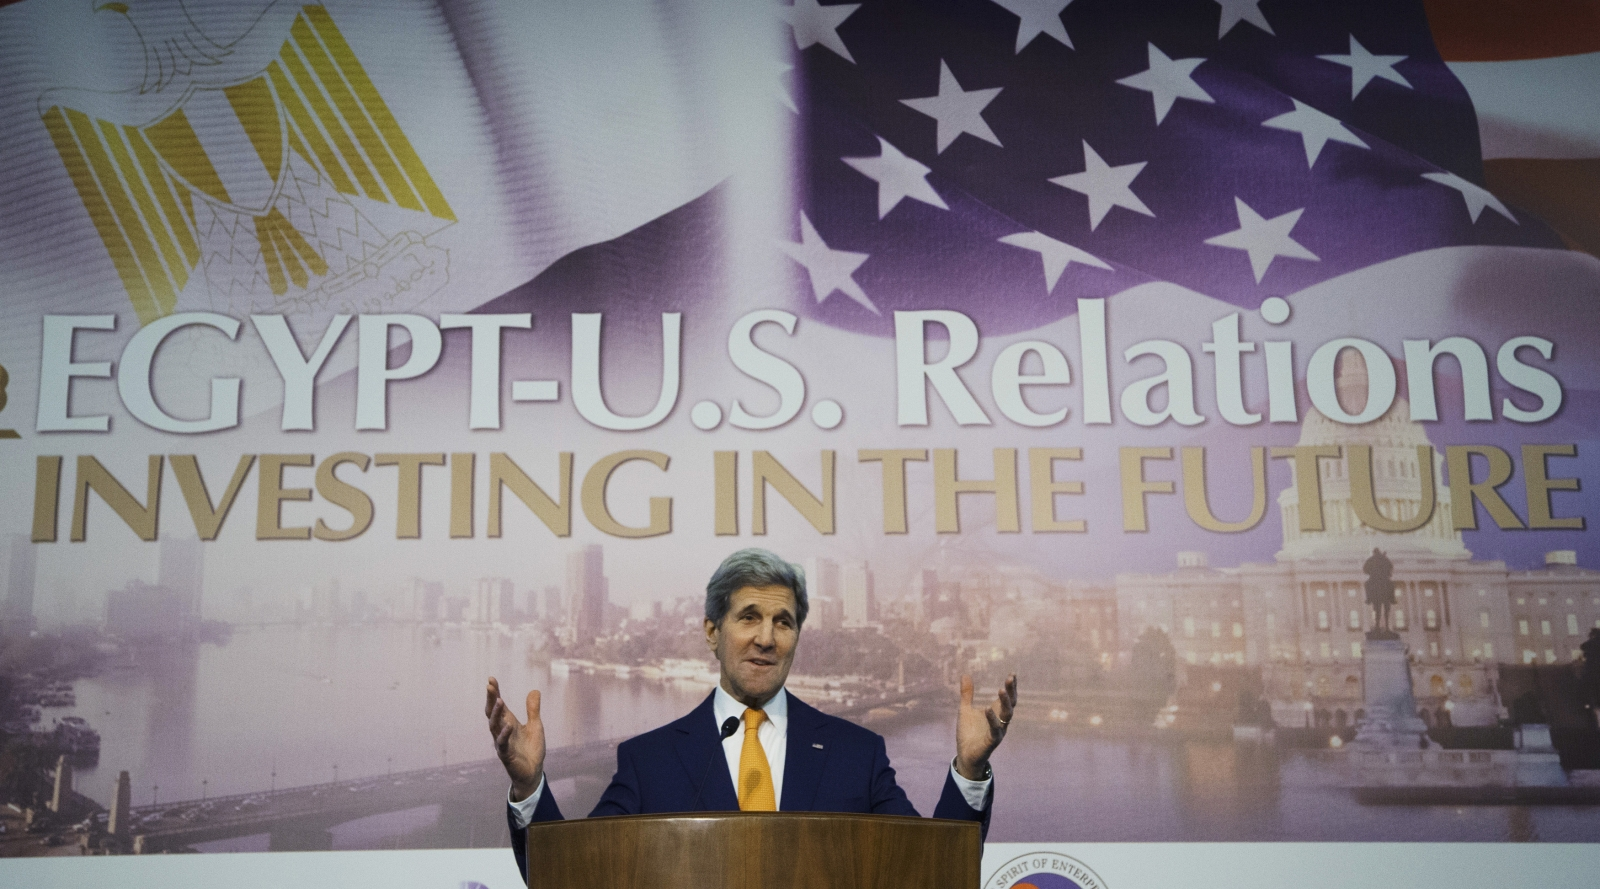 John Kerry supports Egypt economic reform but no new ...